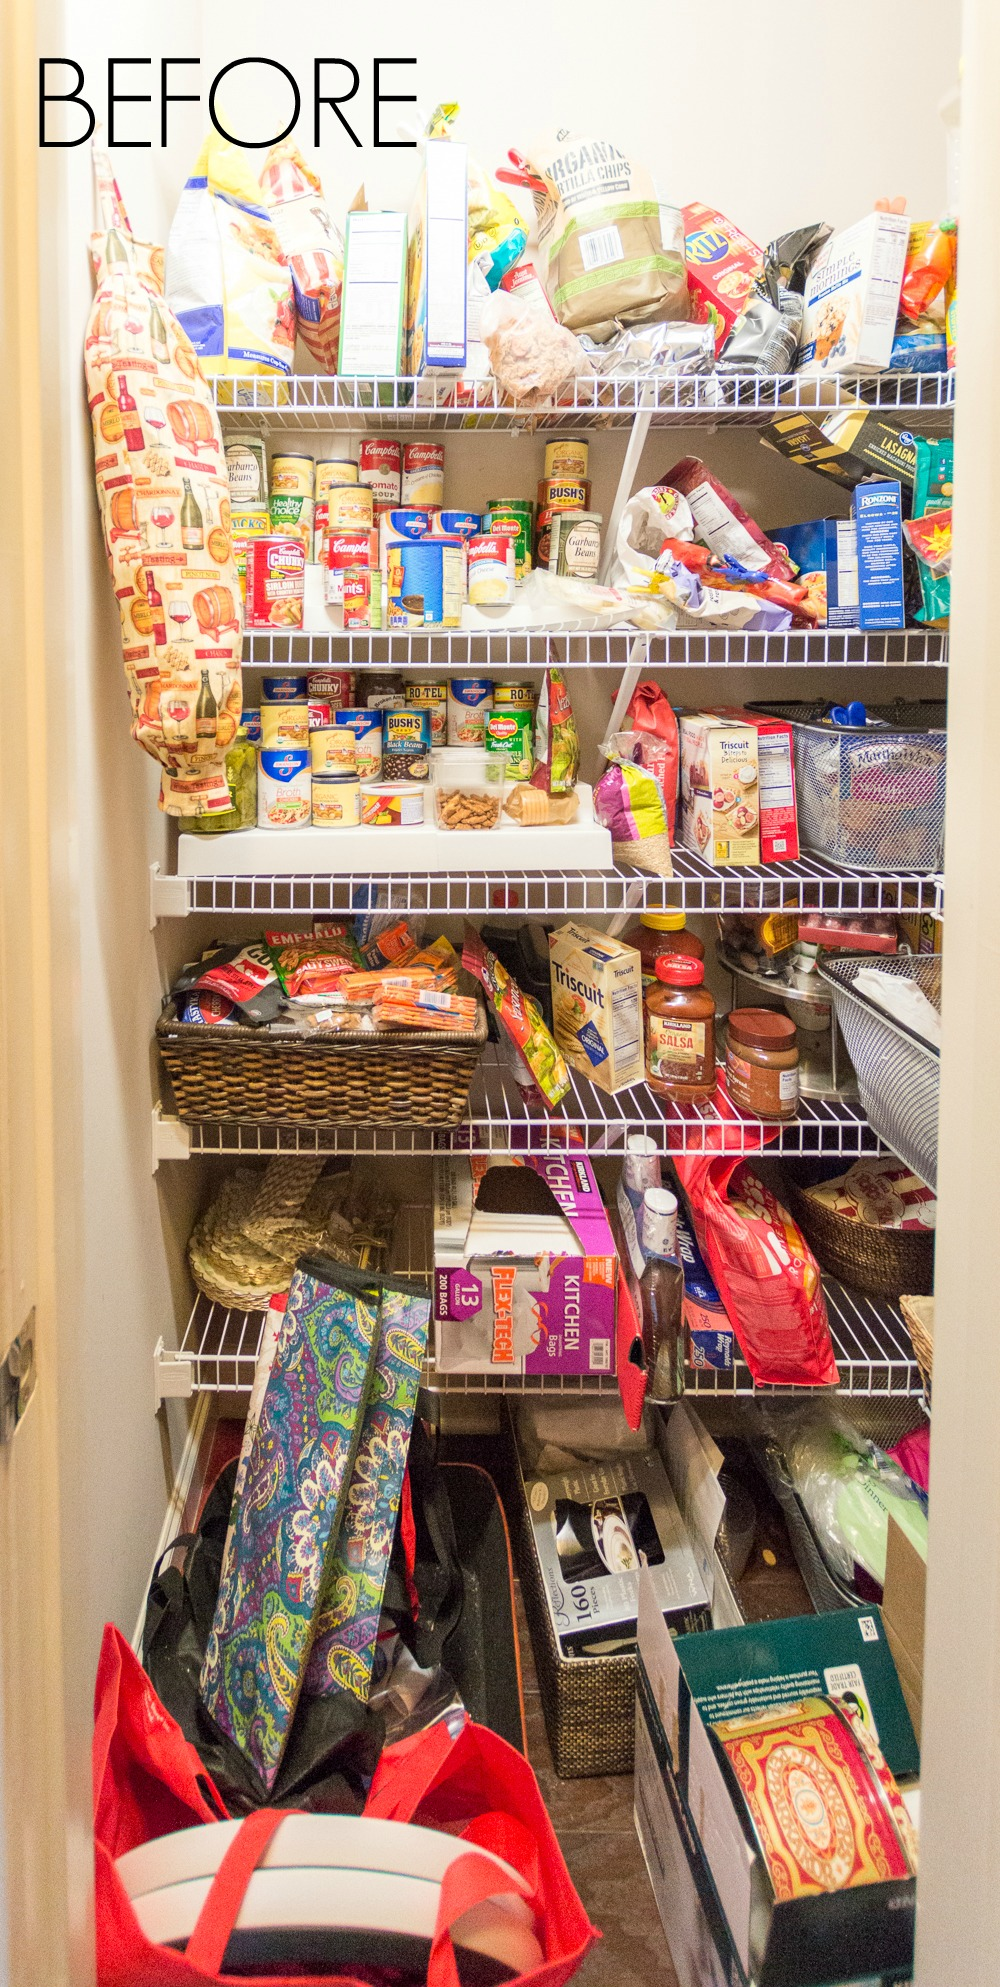 Overflowing before of an organized pantry